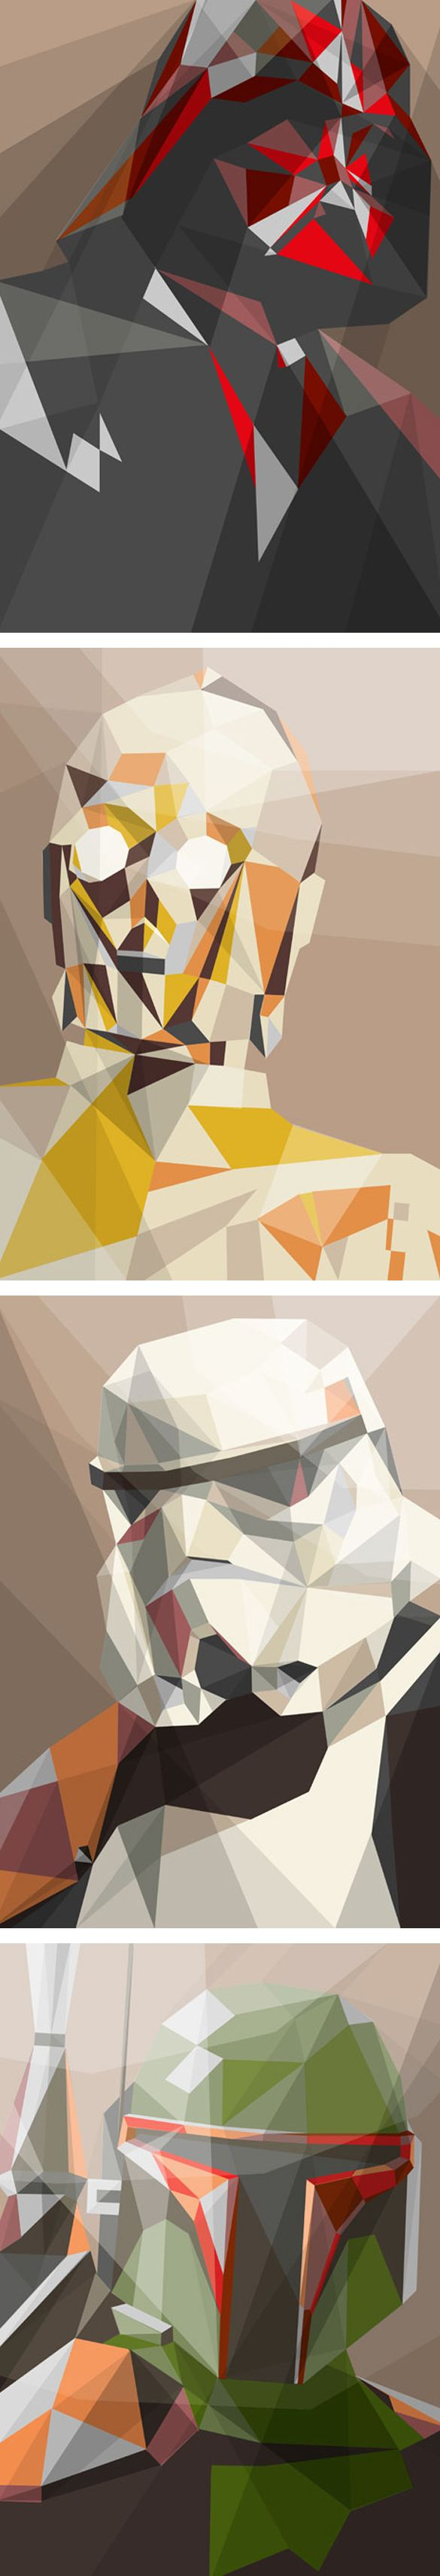 I'm your father - awesome illustrations I'm not even in the Star Wars fandom, but this is awesome